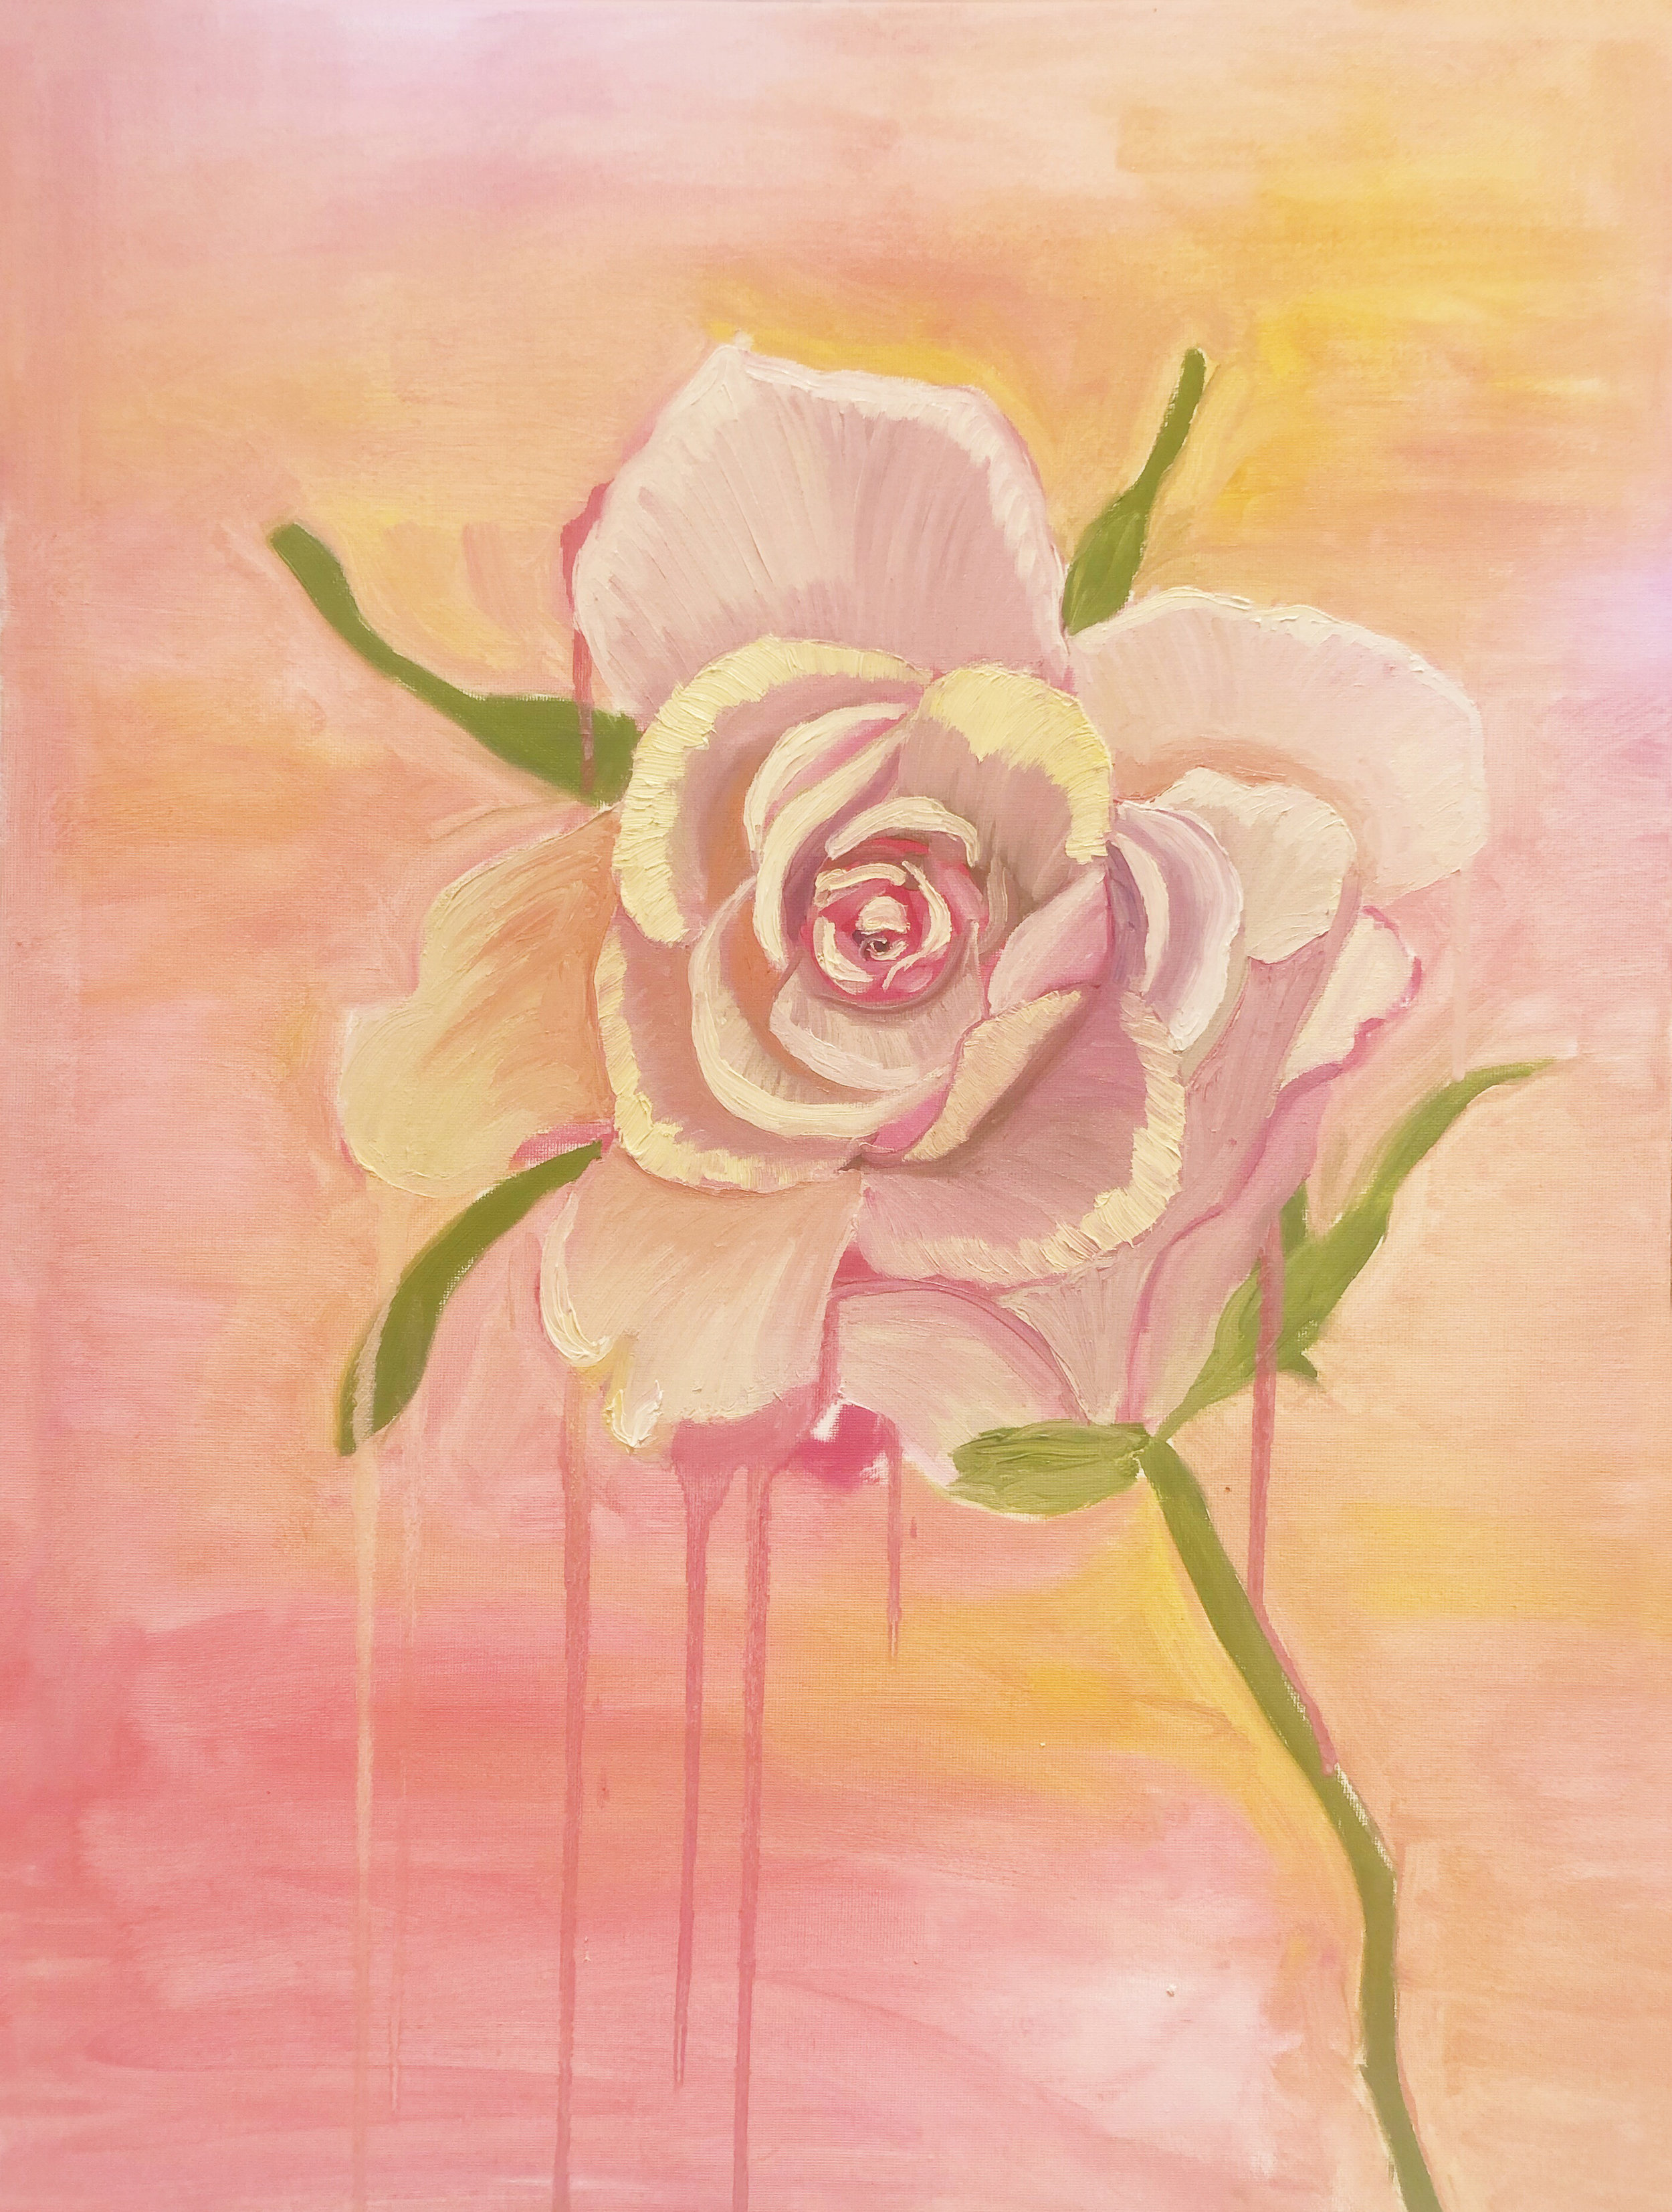 katrina-eugenia-philosophy-skincare-love-philosophy-amazing-grace-amazing-grace-ballet-rose-live-painting-oil-painting95.JPG